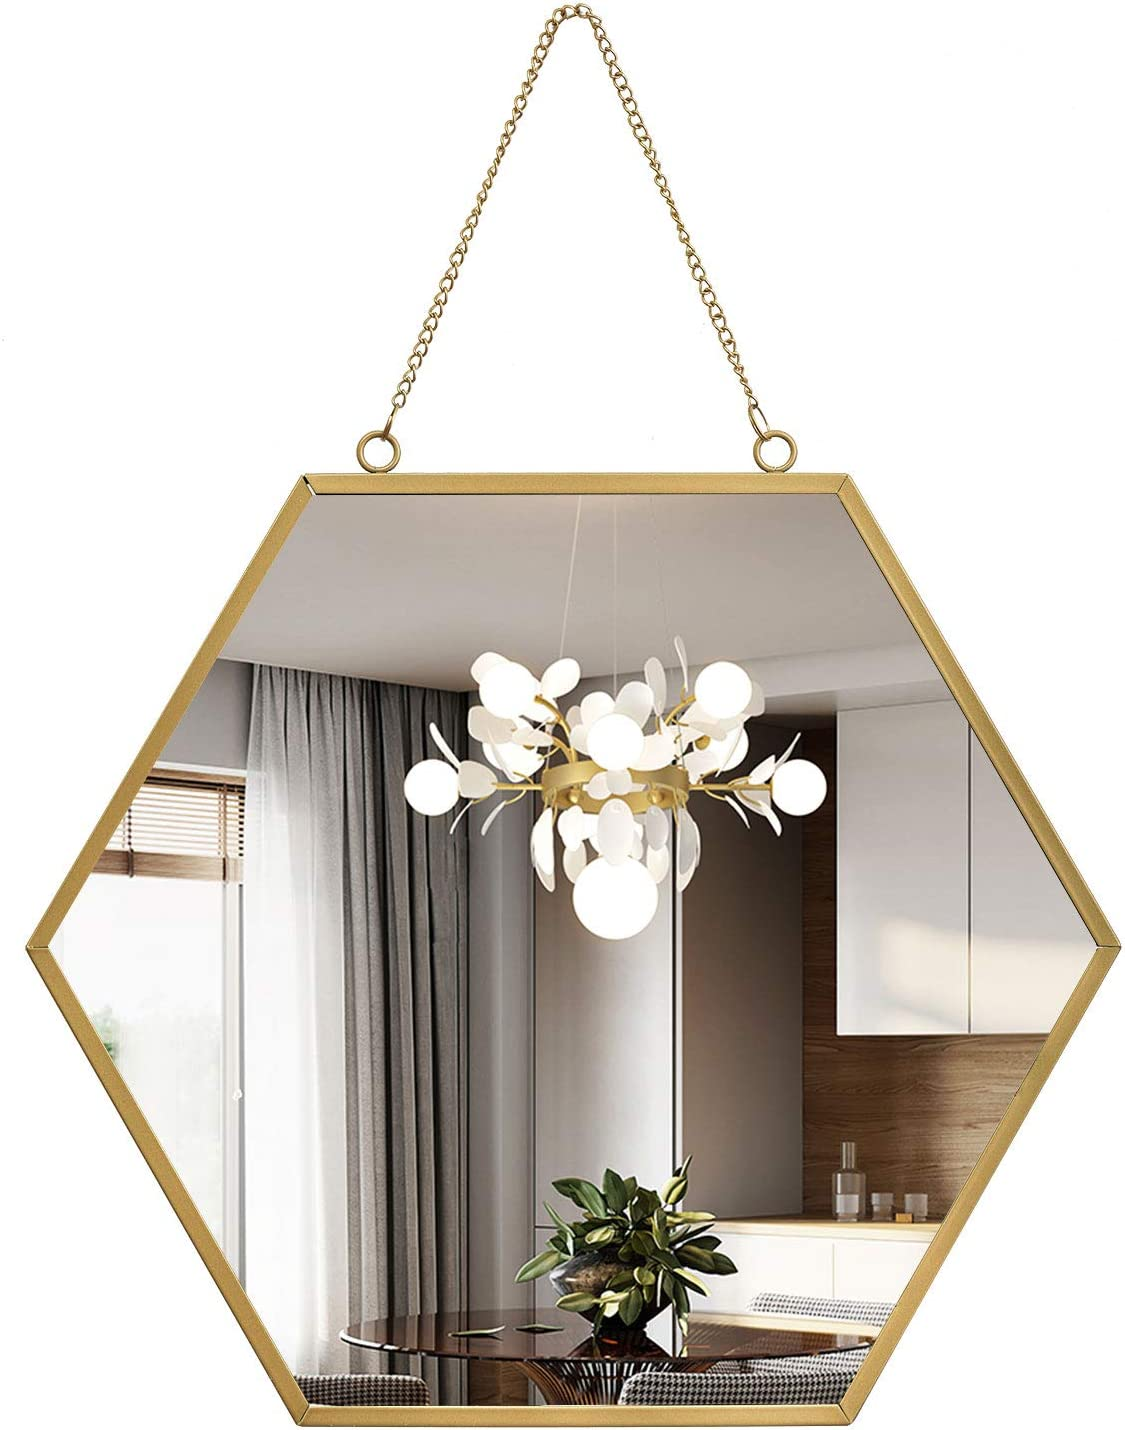 Gold Hexagon Hanging Wall Mirror with Chain Geometric Minimalist Home Décor for Bedroom Bathroom Living Room Entryway 15.7